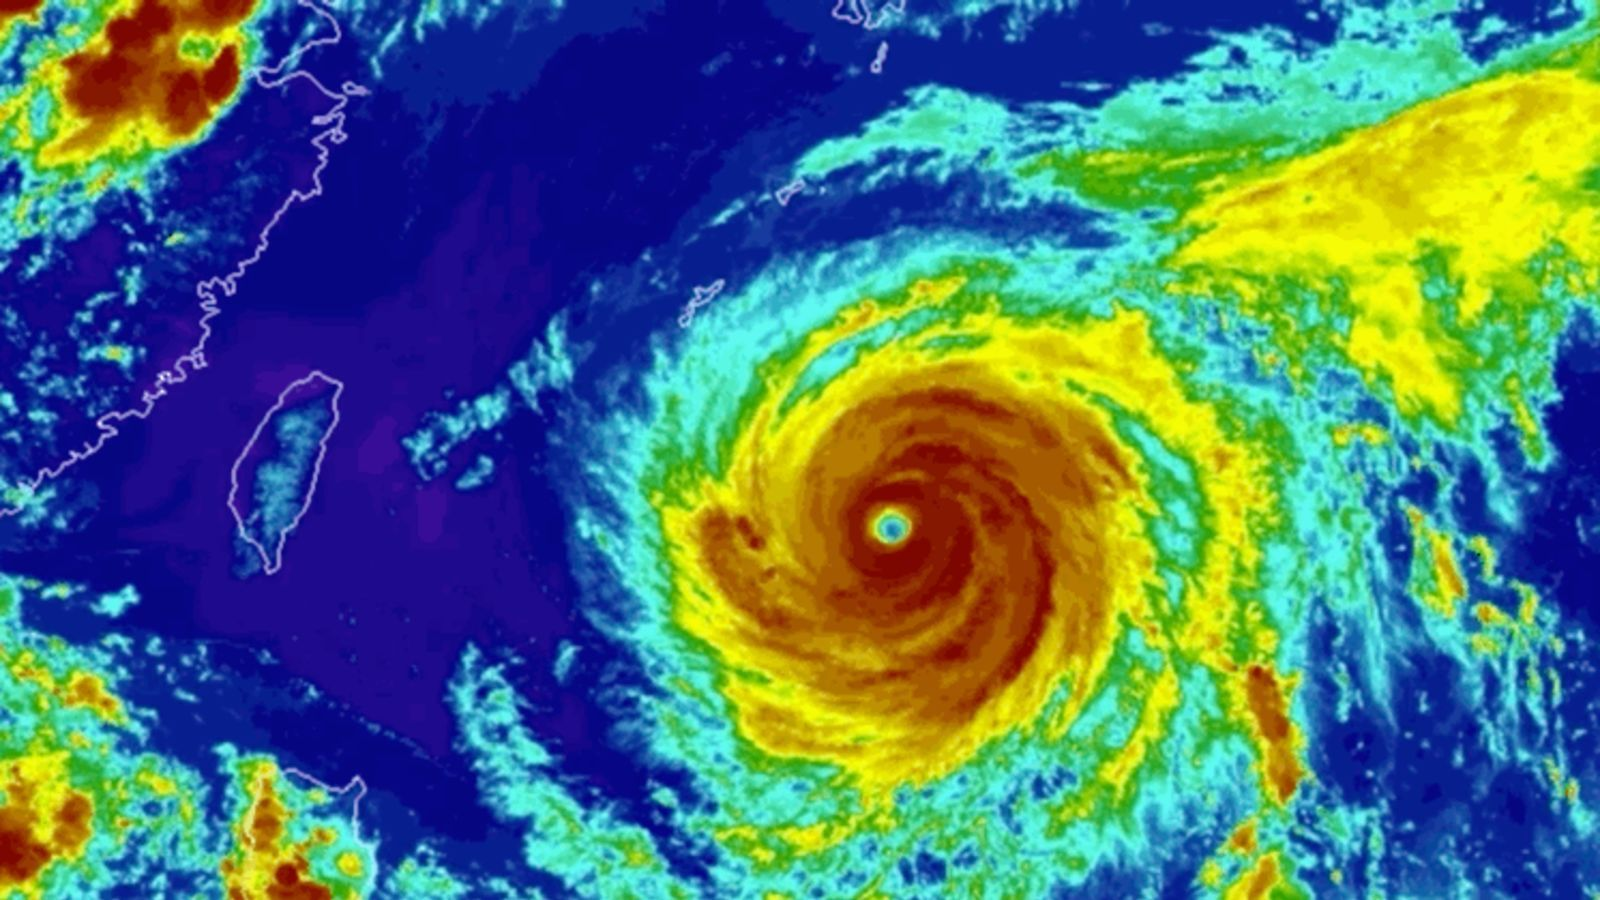 I Think It S Time To Retire Maria As A Name For Any Storm The Name Has Been Wiped From The Hurricane List In The Atlantic After Hur Japan Hurricane List Storm